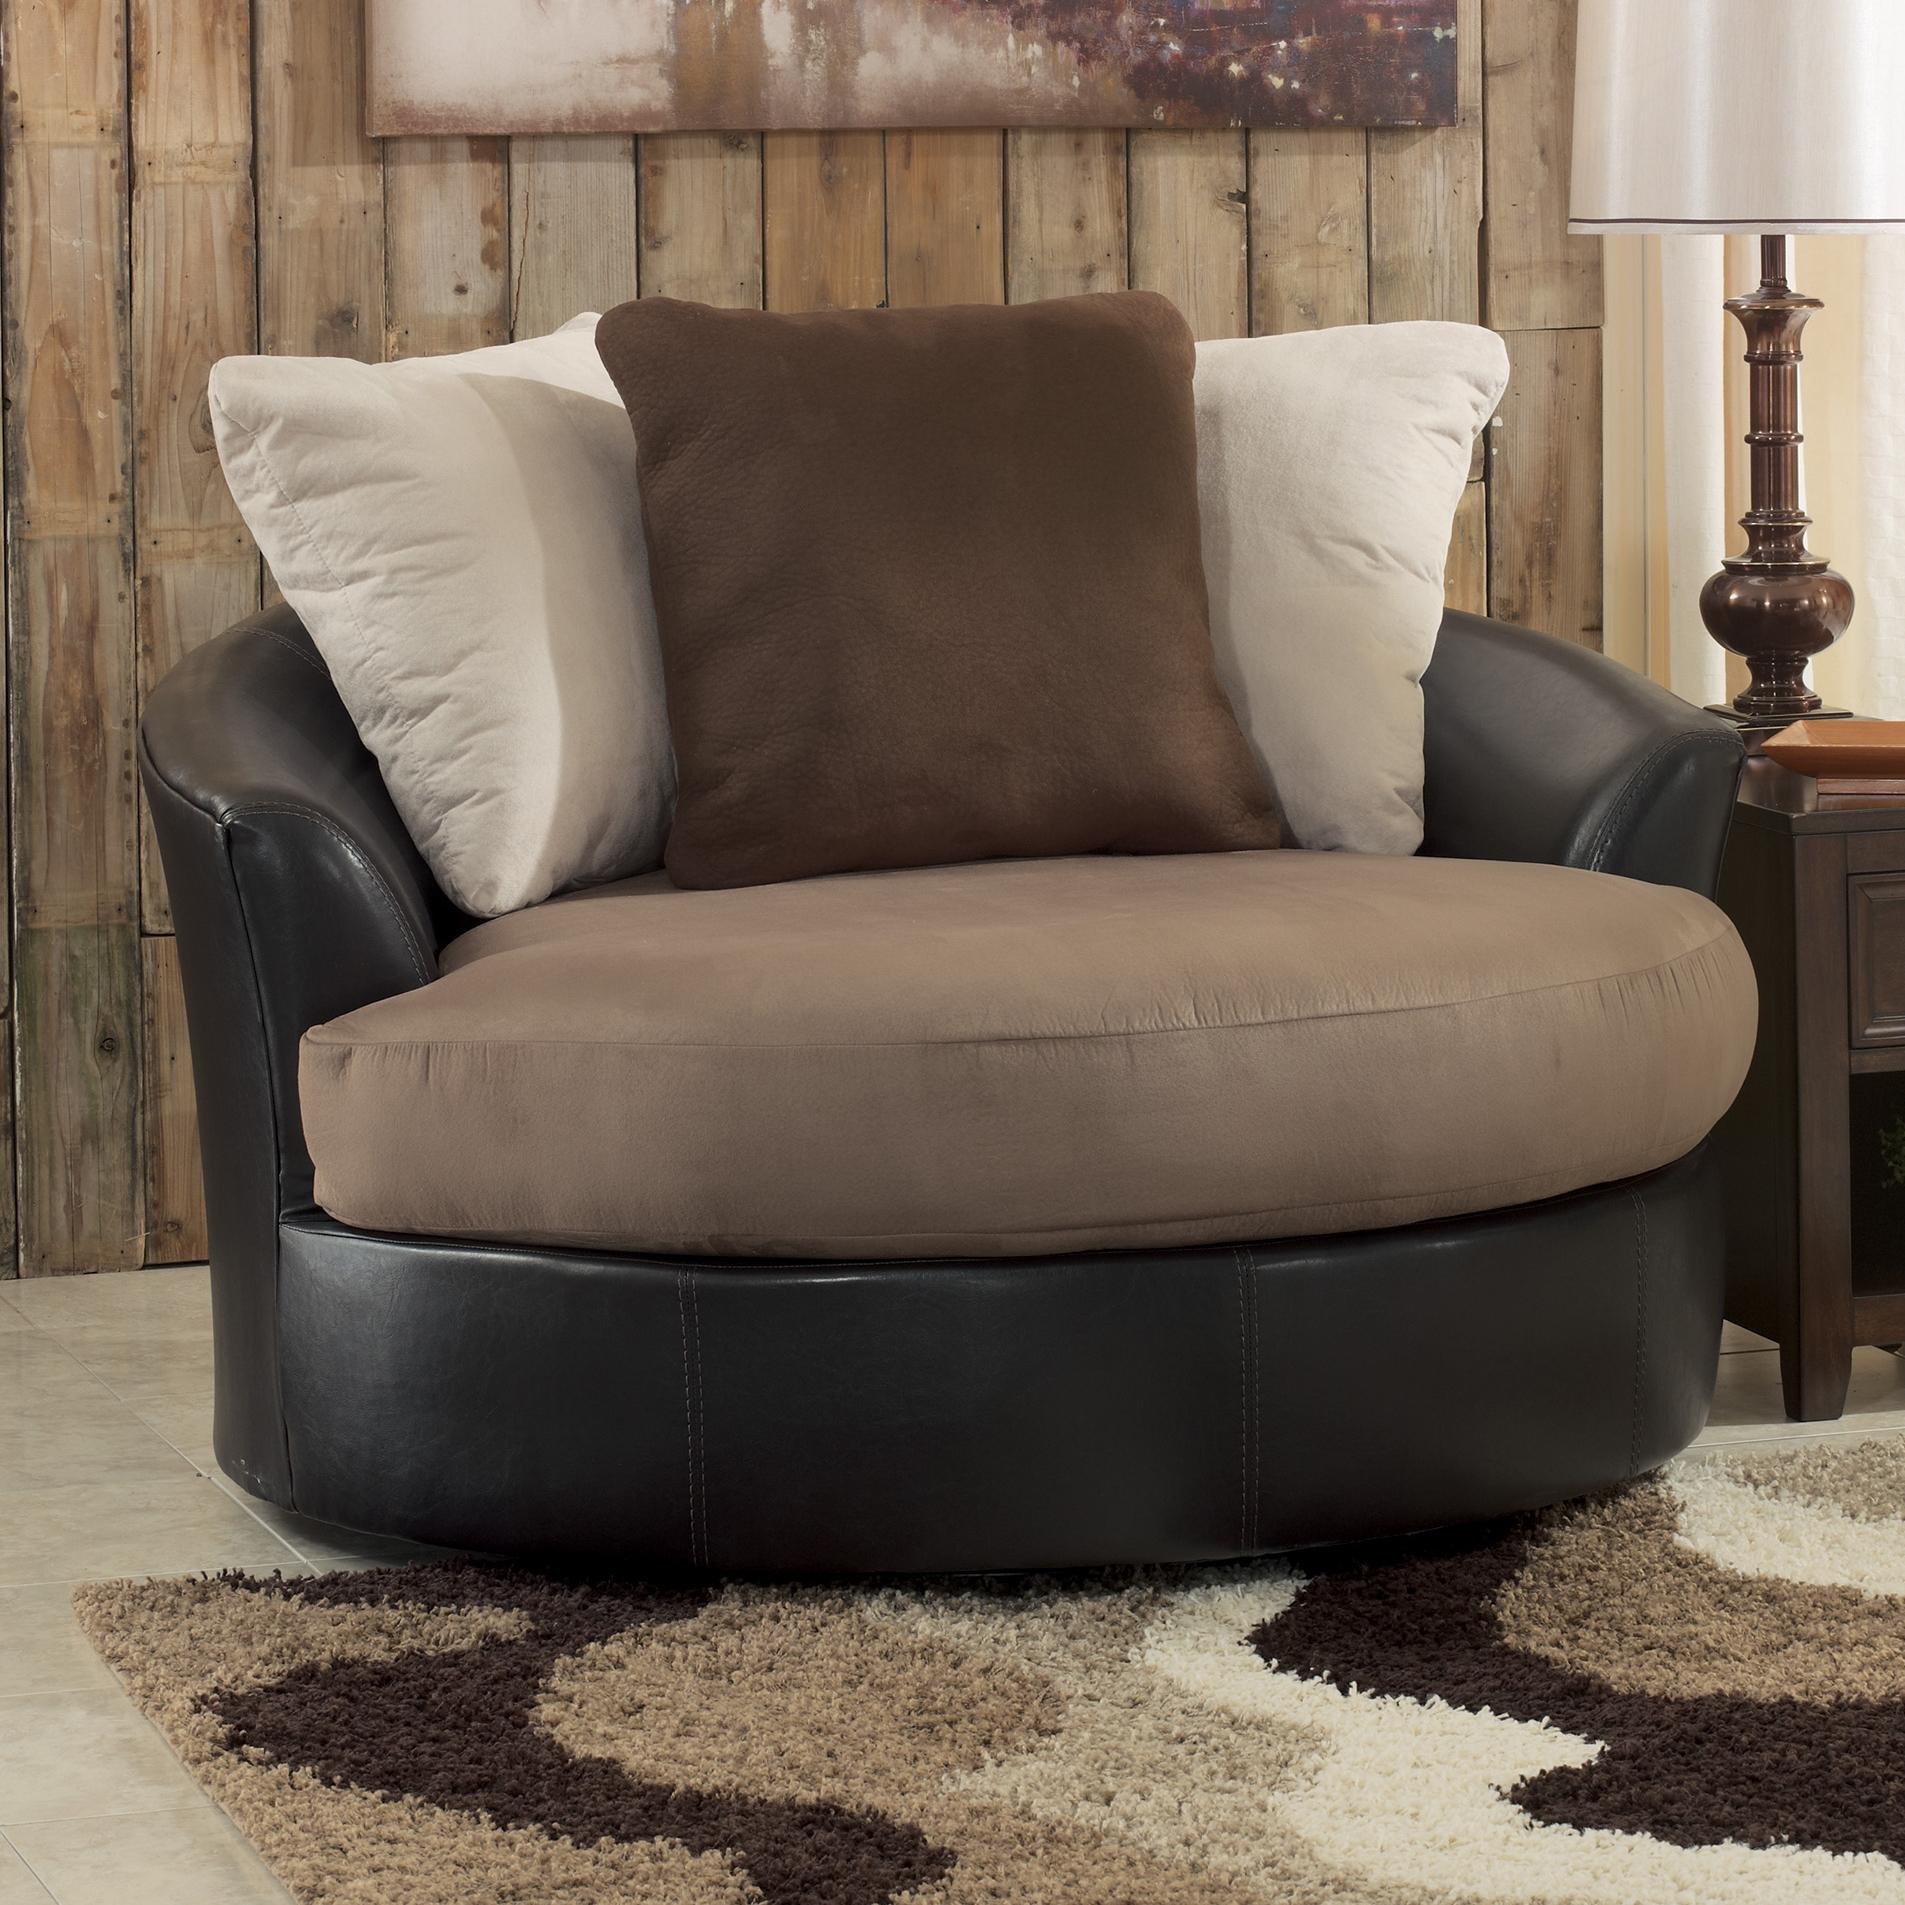 Oversize Accent Chairs For Sale submited images